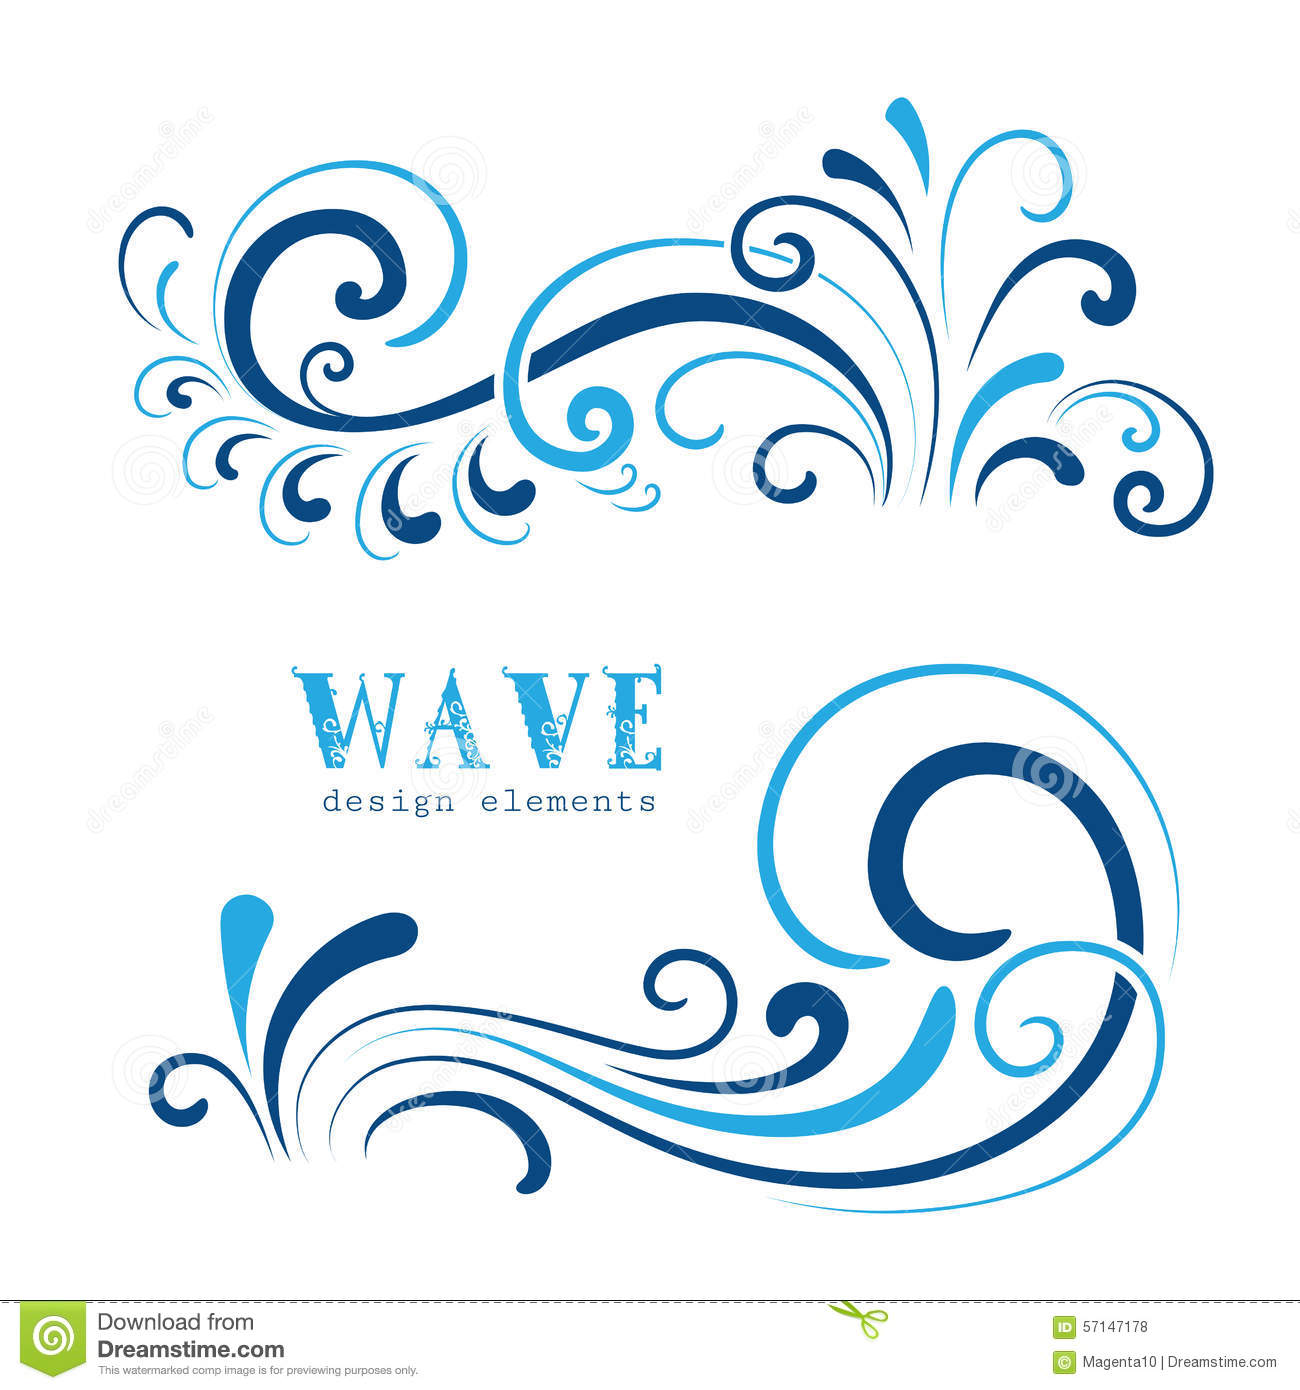 Wave swirls